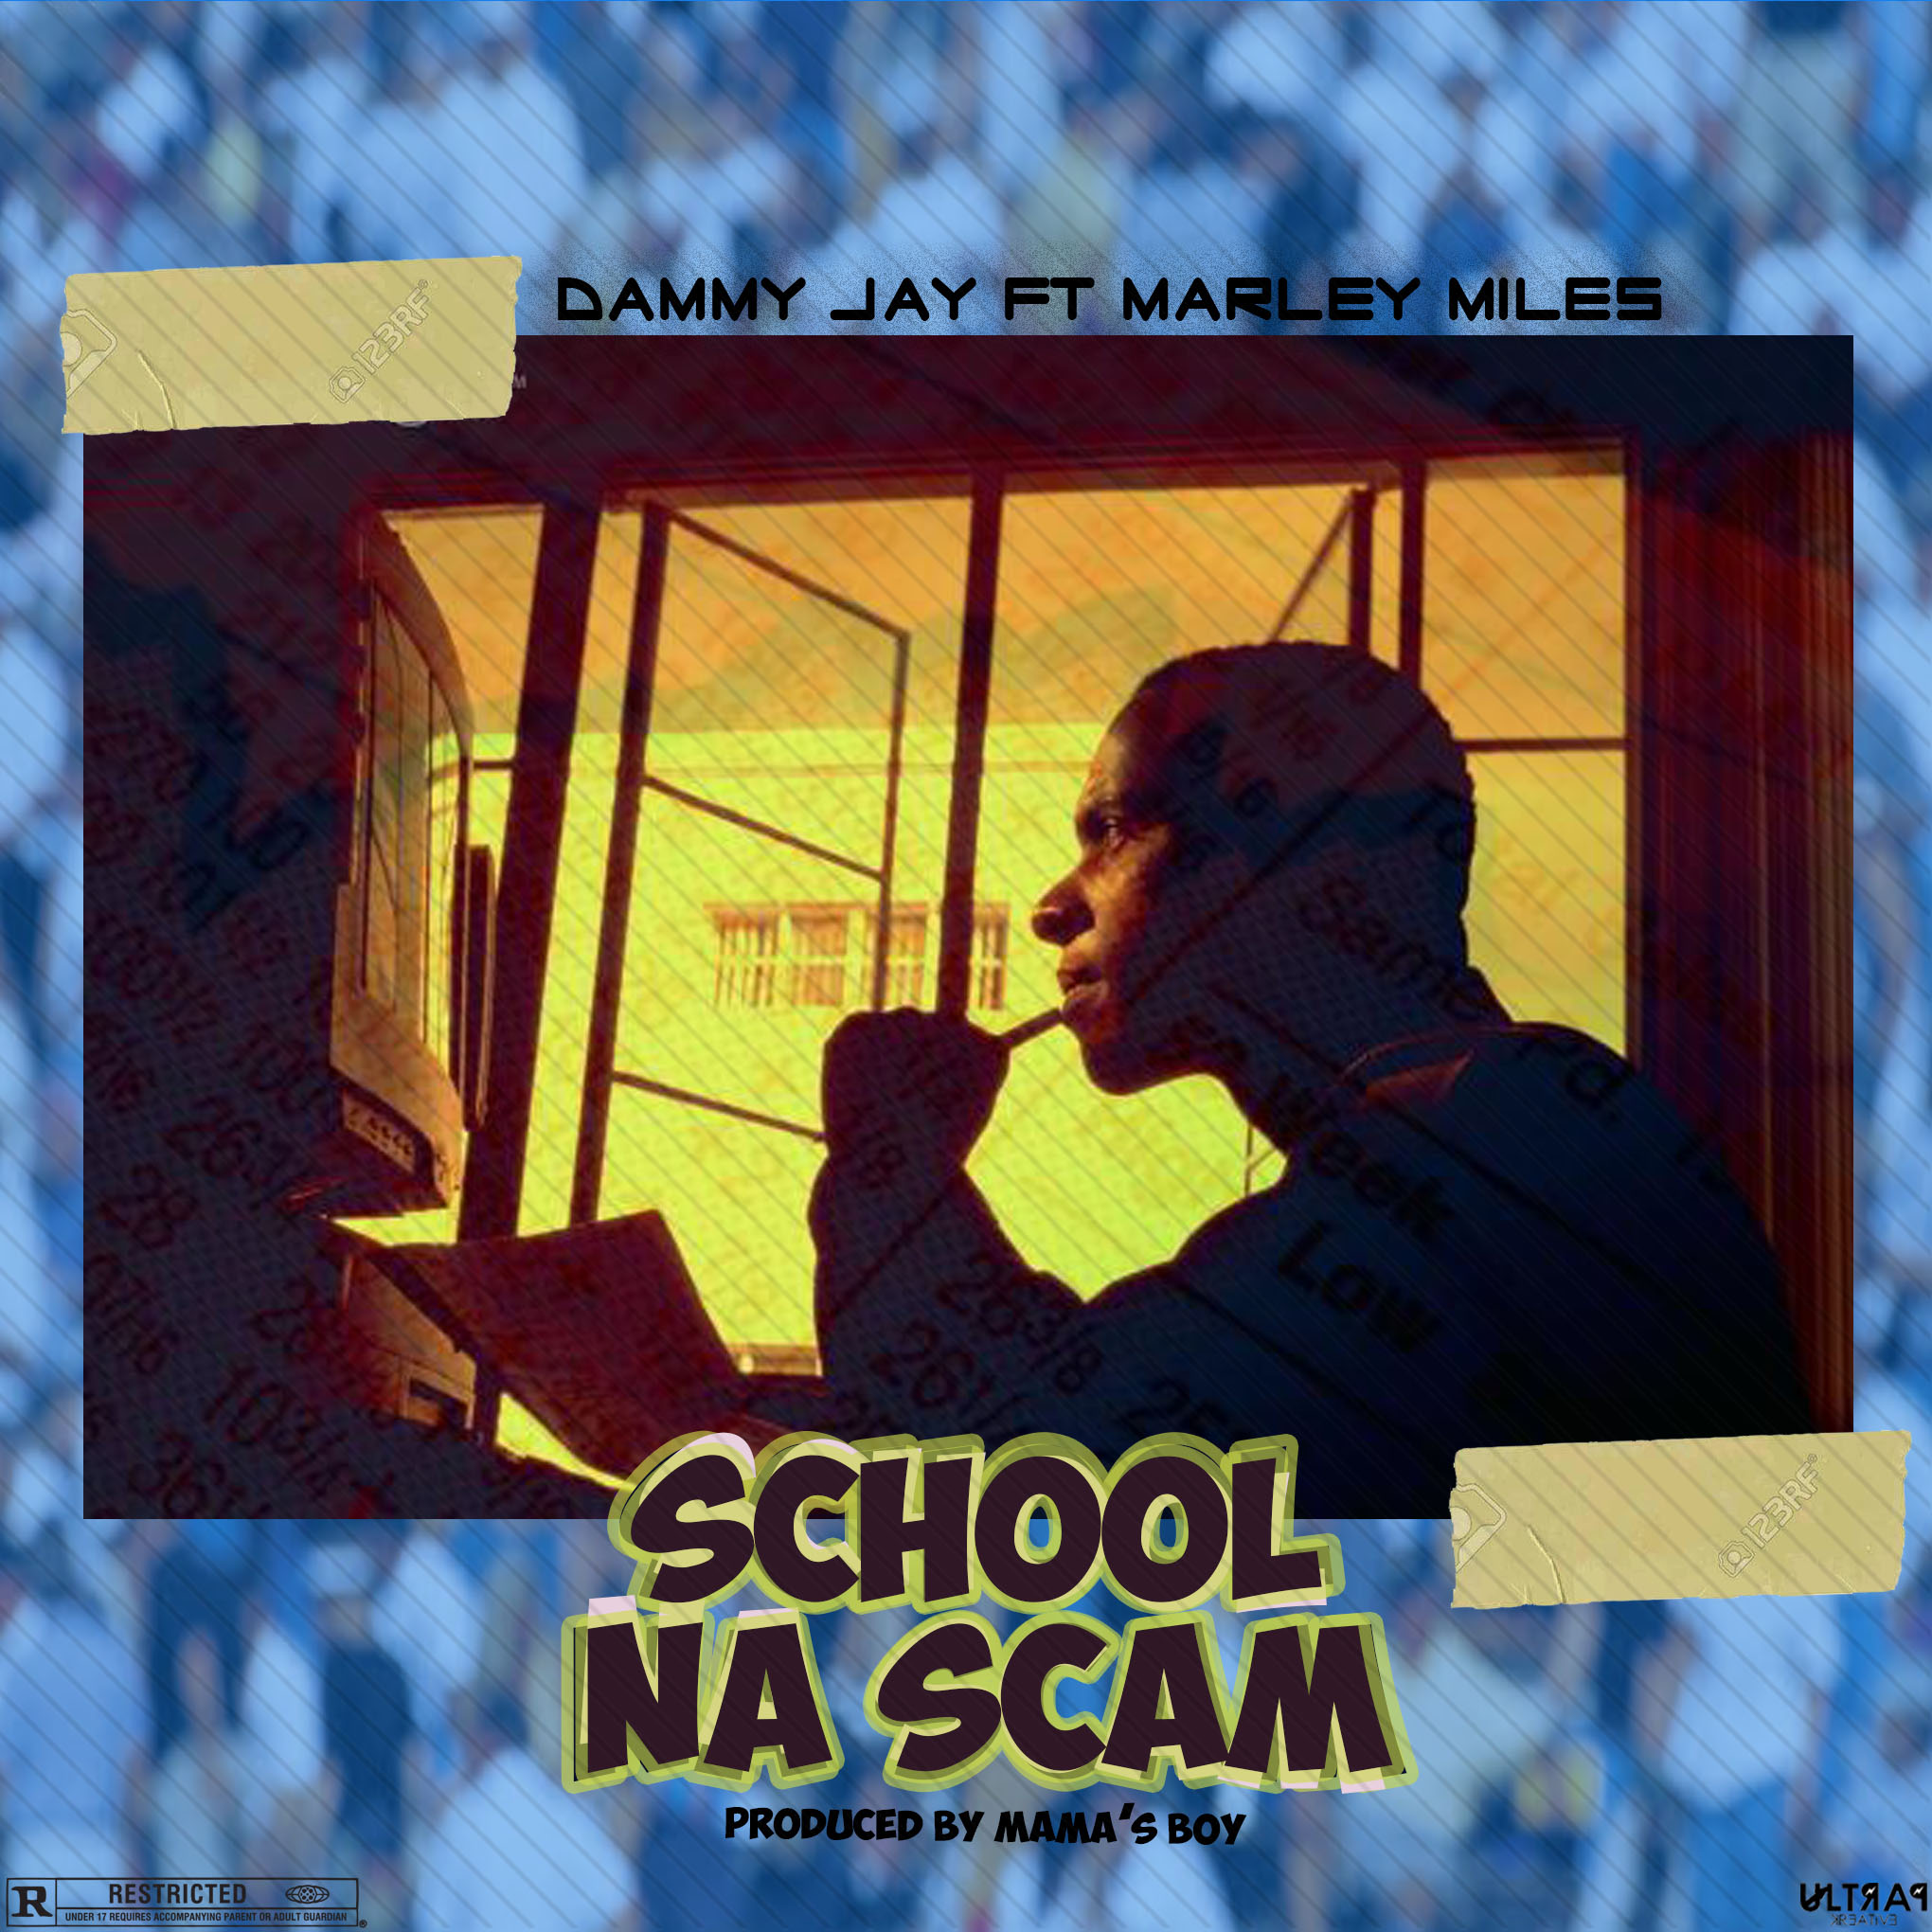 Dammy Jay Ft Marley Miles - School Na Scam